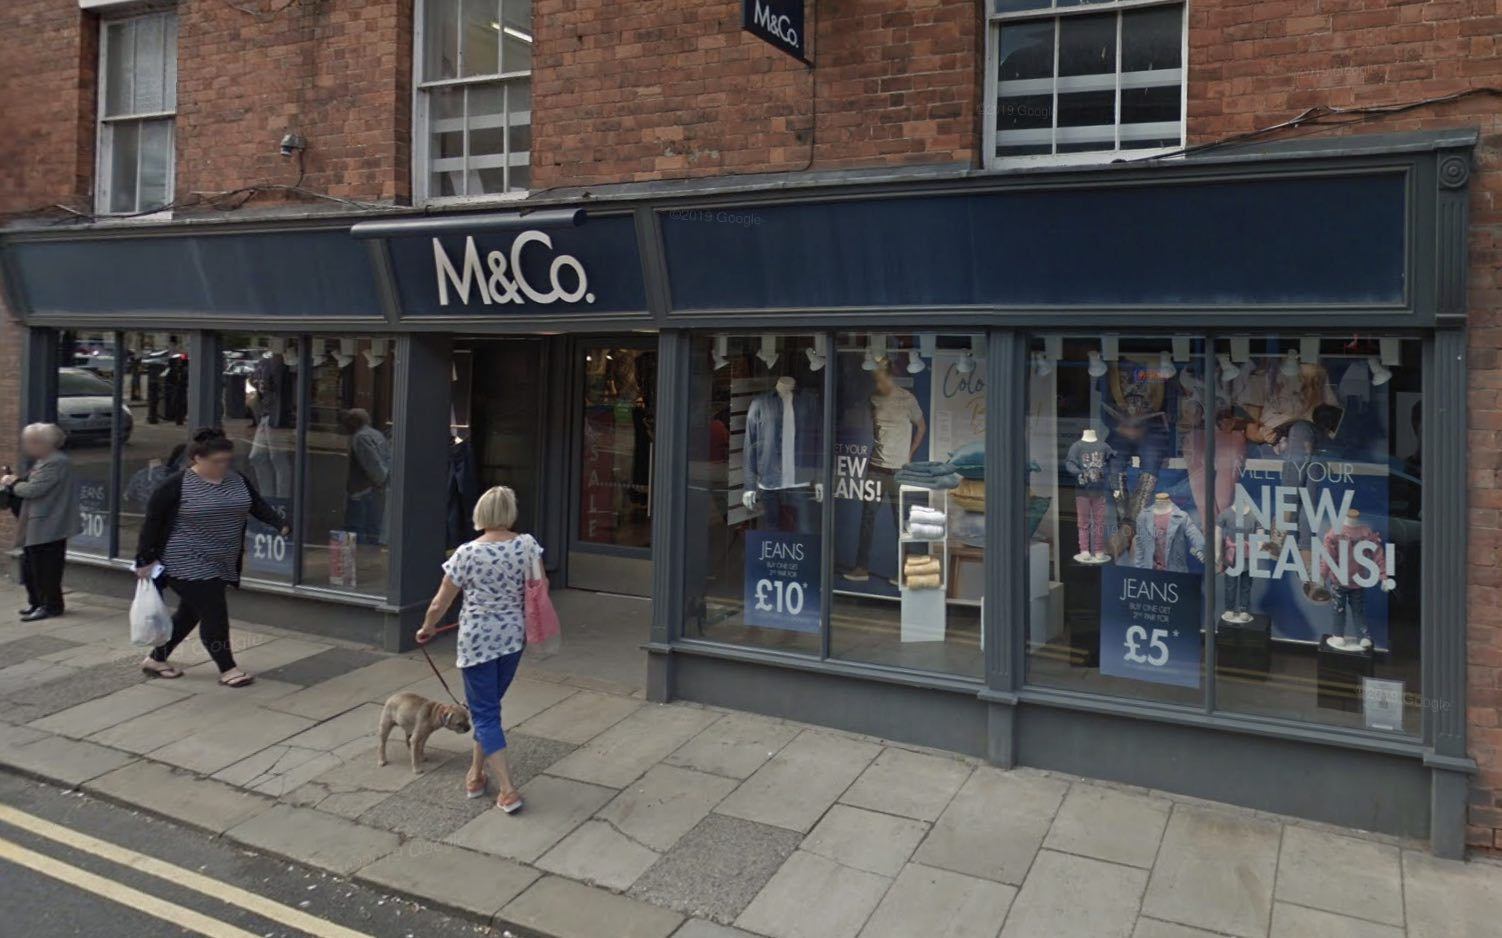 M&Co store in Ripon saved from closure